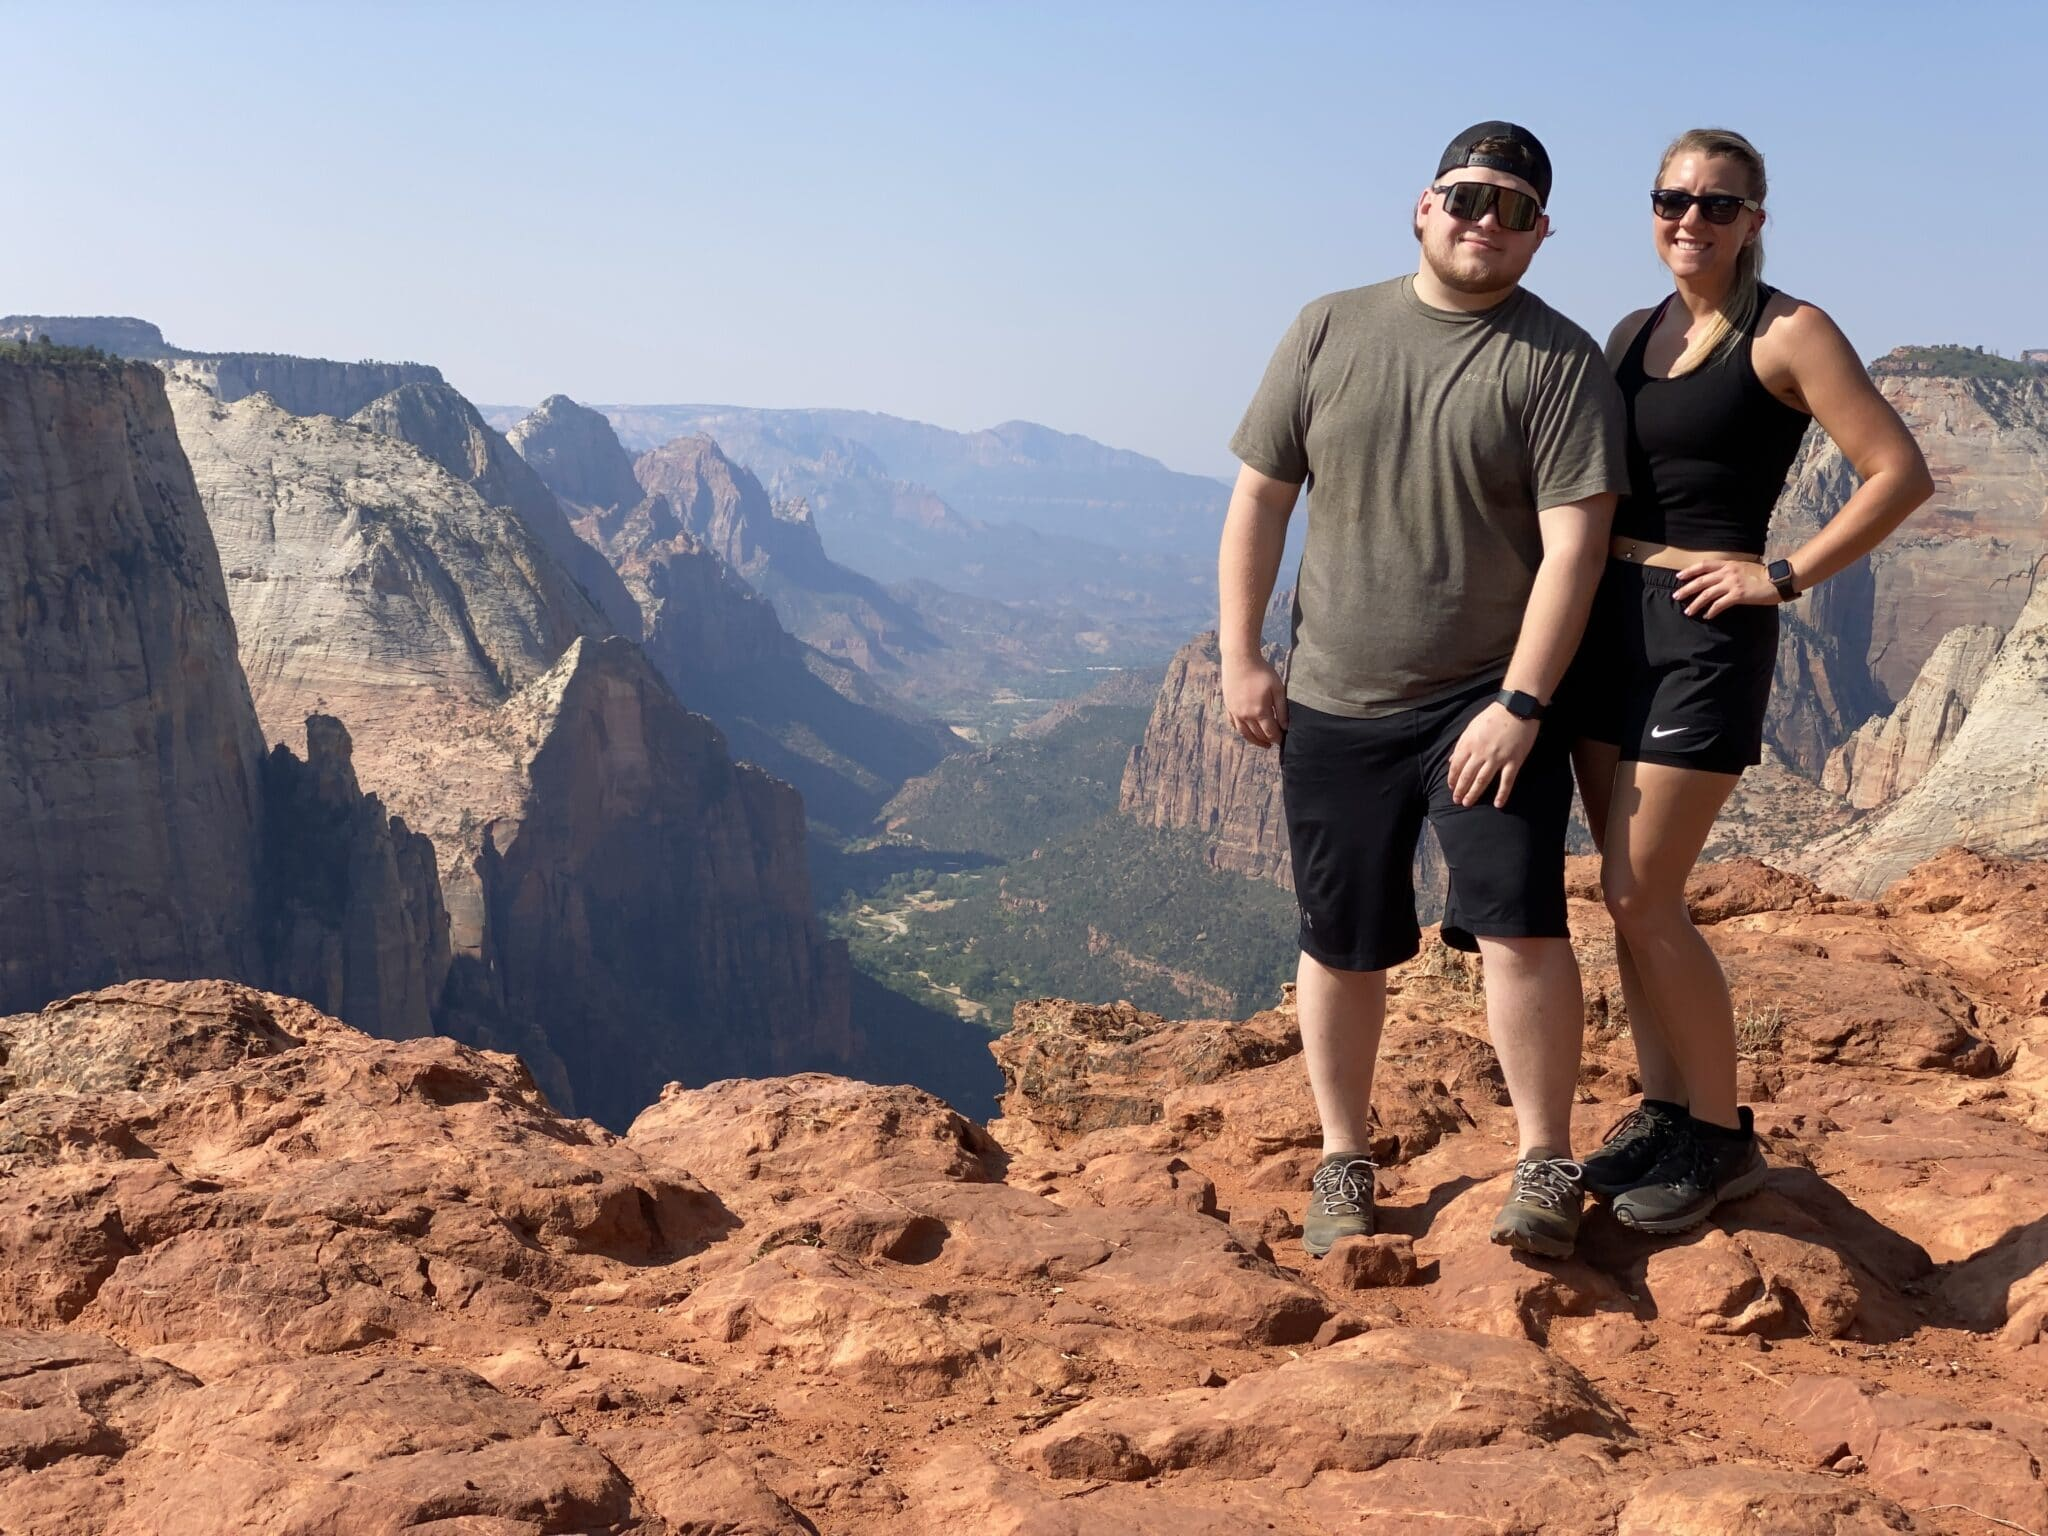 couple wearing athletic clothes stand on the edge of mountain top overlooking view of national park both with sunglasses on